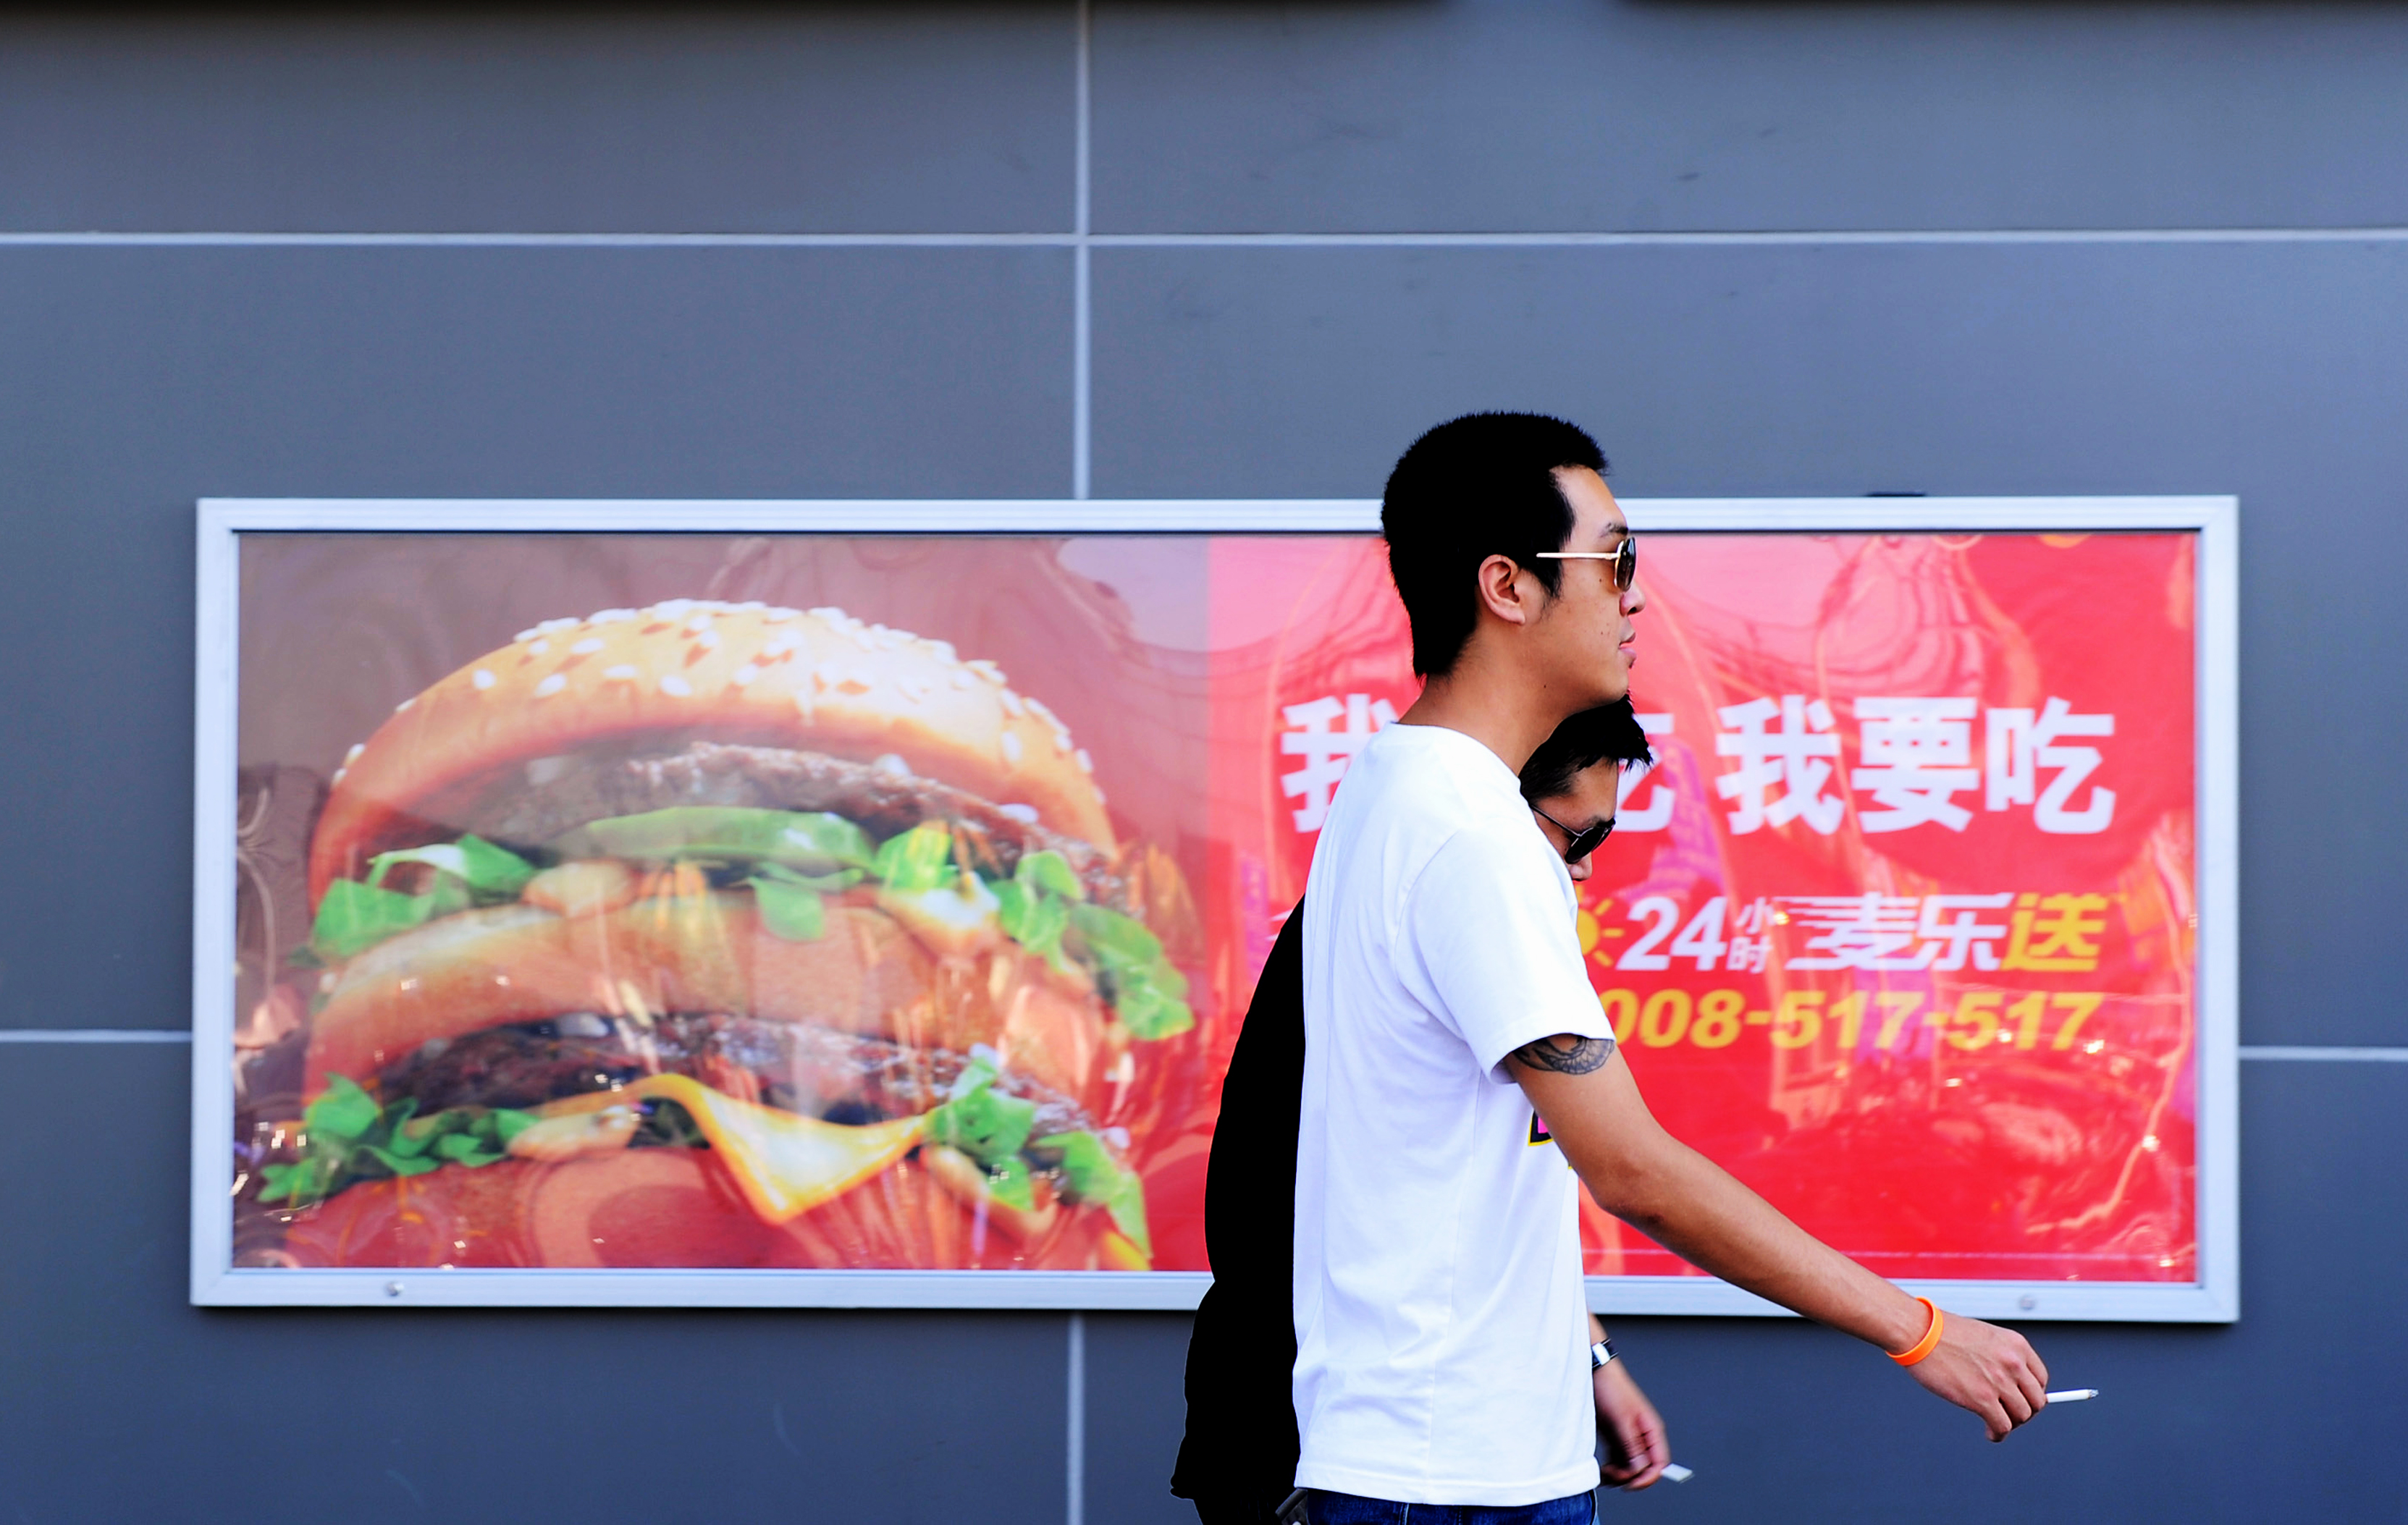 Two Chinese men walk past a billboard ad